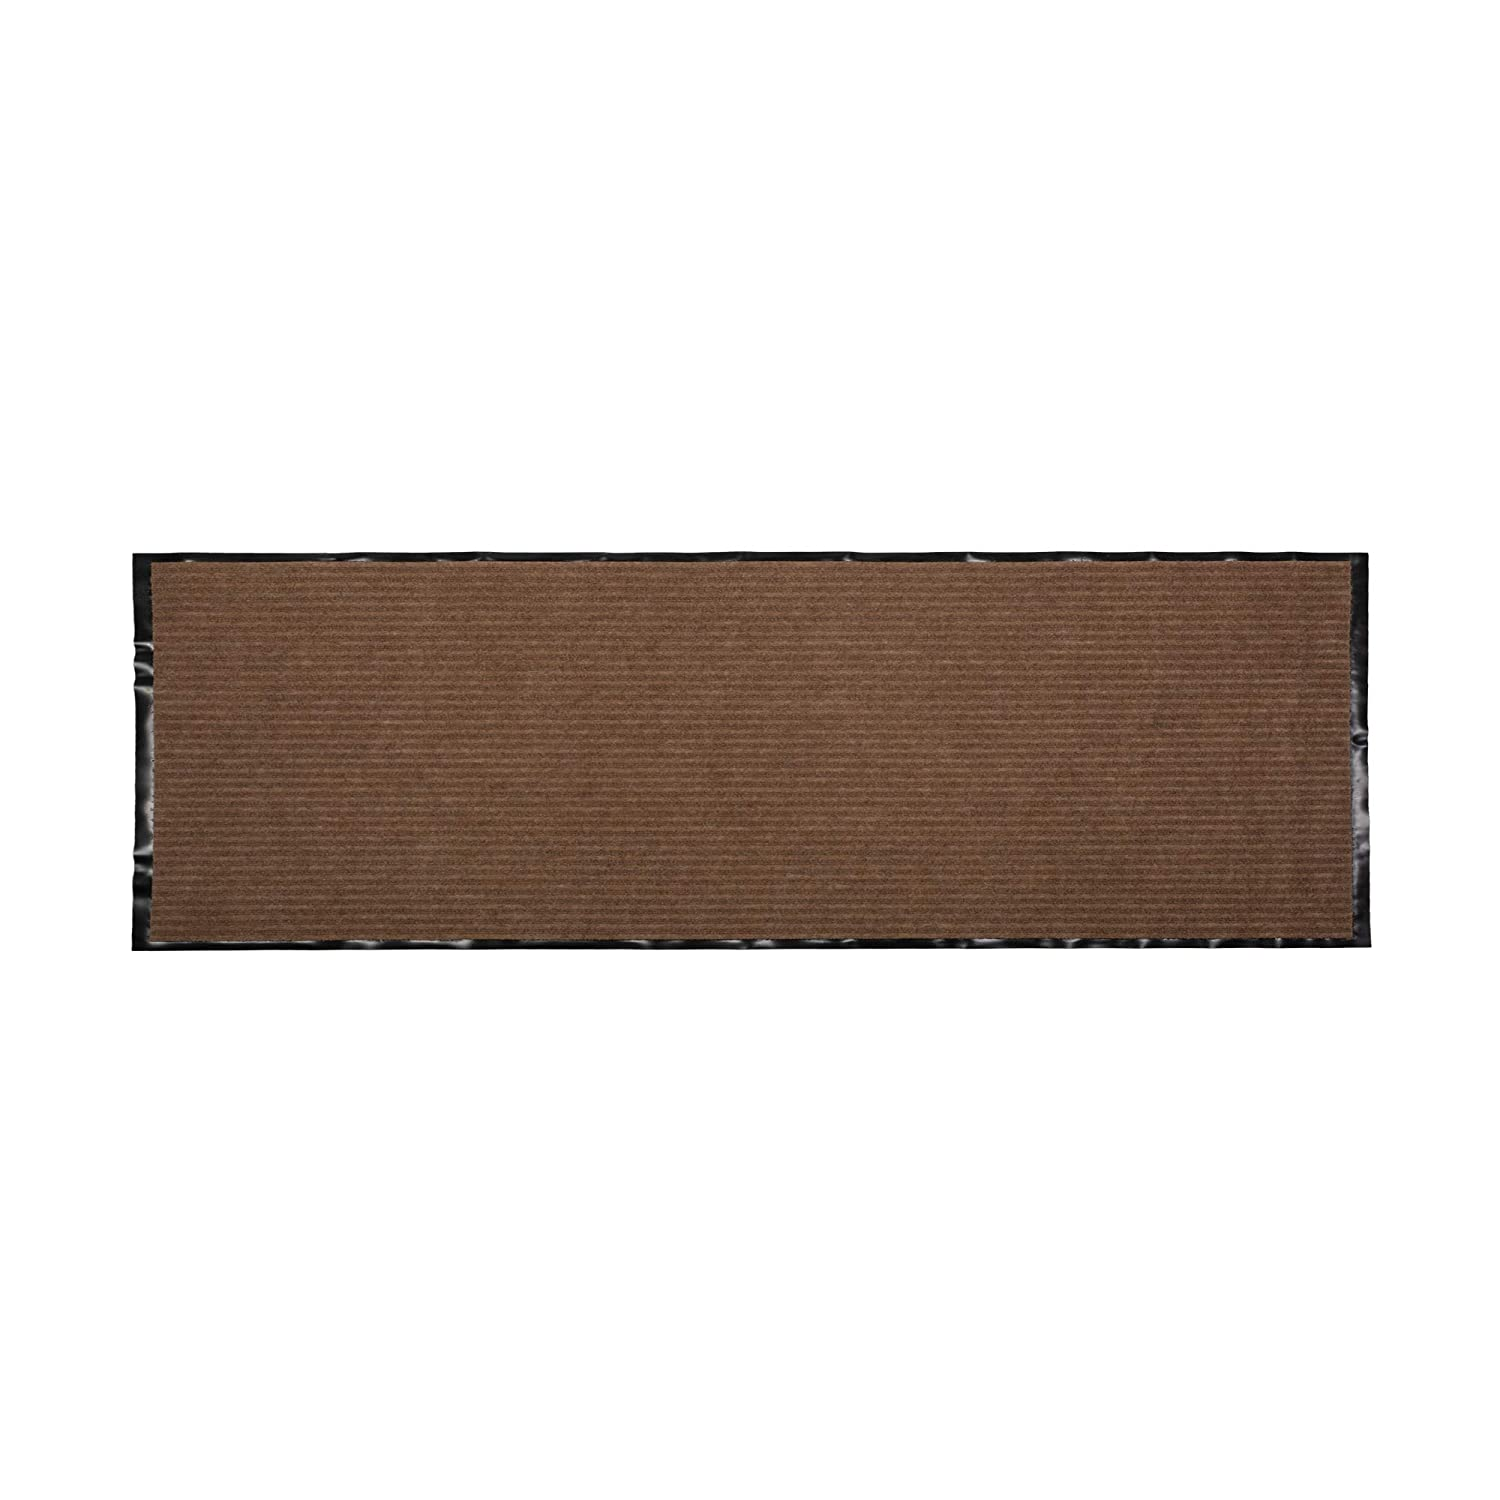 J&M Home Fashions Heavy Duty, Xtra Long Waterproof Ribbed Utility Doormat (22x60 - Brown) Entry Way Shoes Scraper for Patio, Garage, or Front Door, Trap Dirt, Debris, Mud Outside J & M Home Fashions 10343A